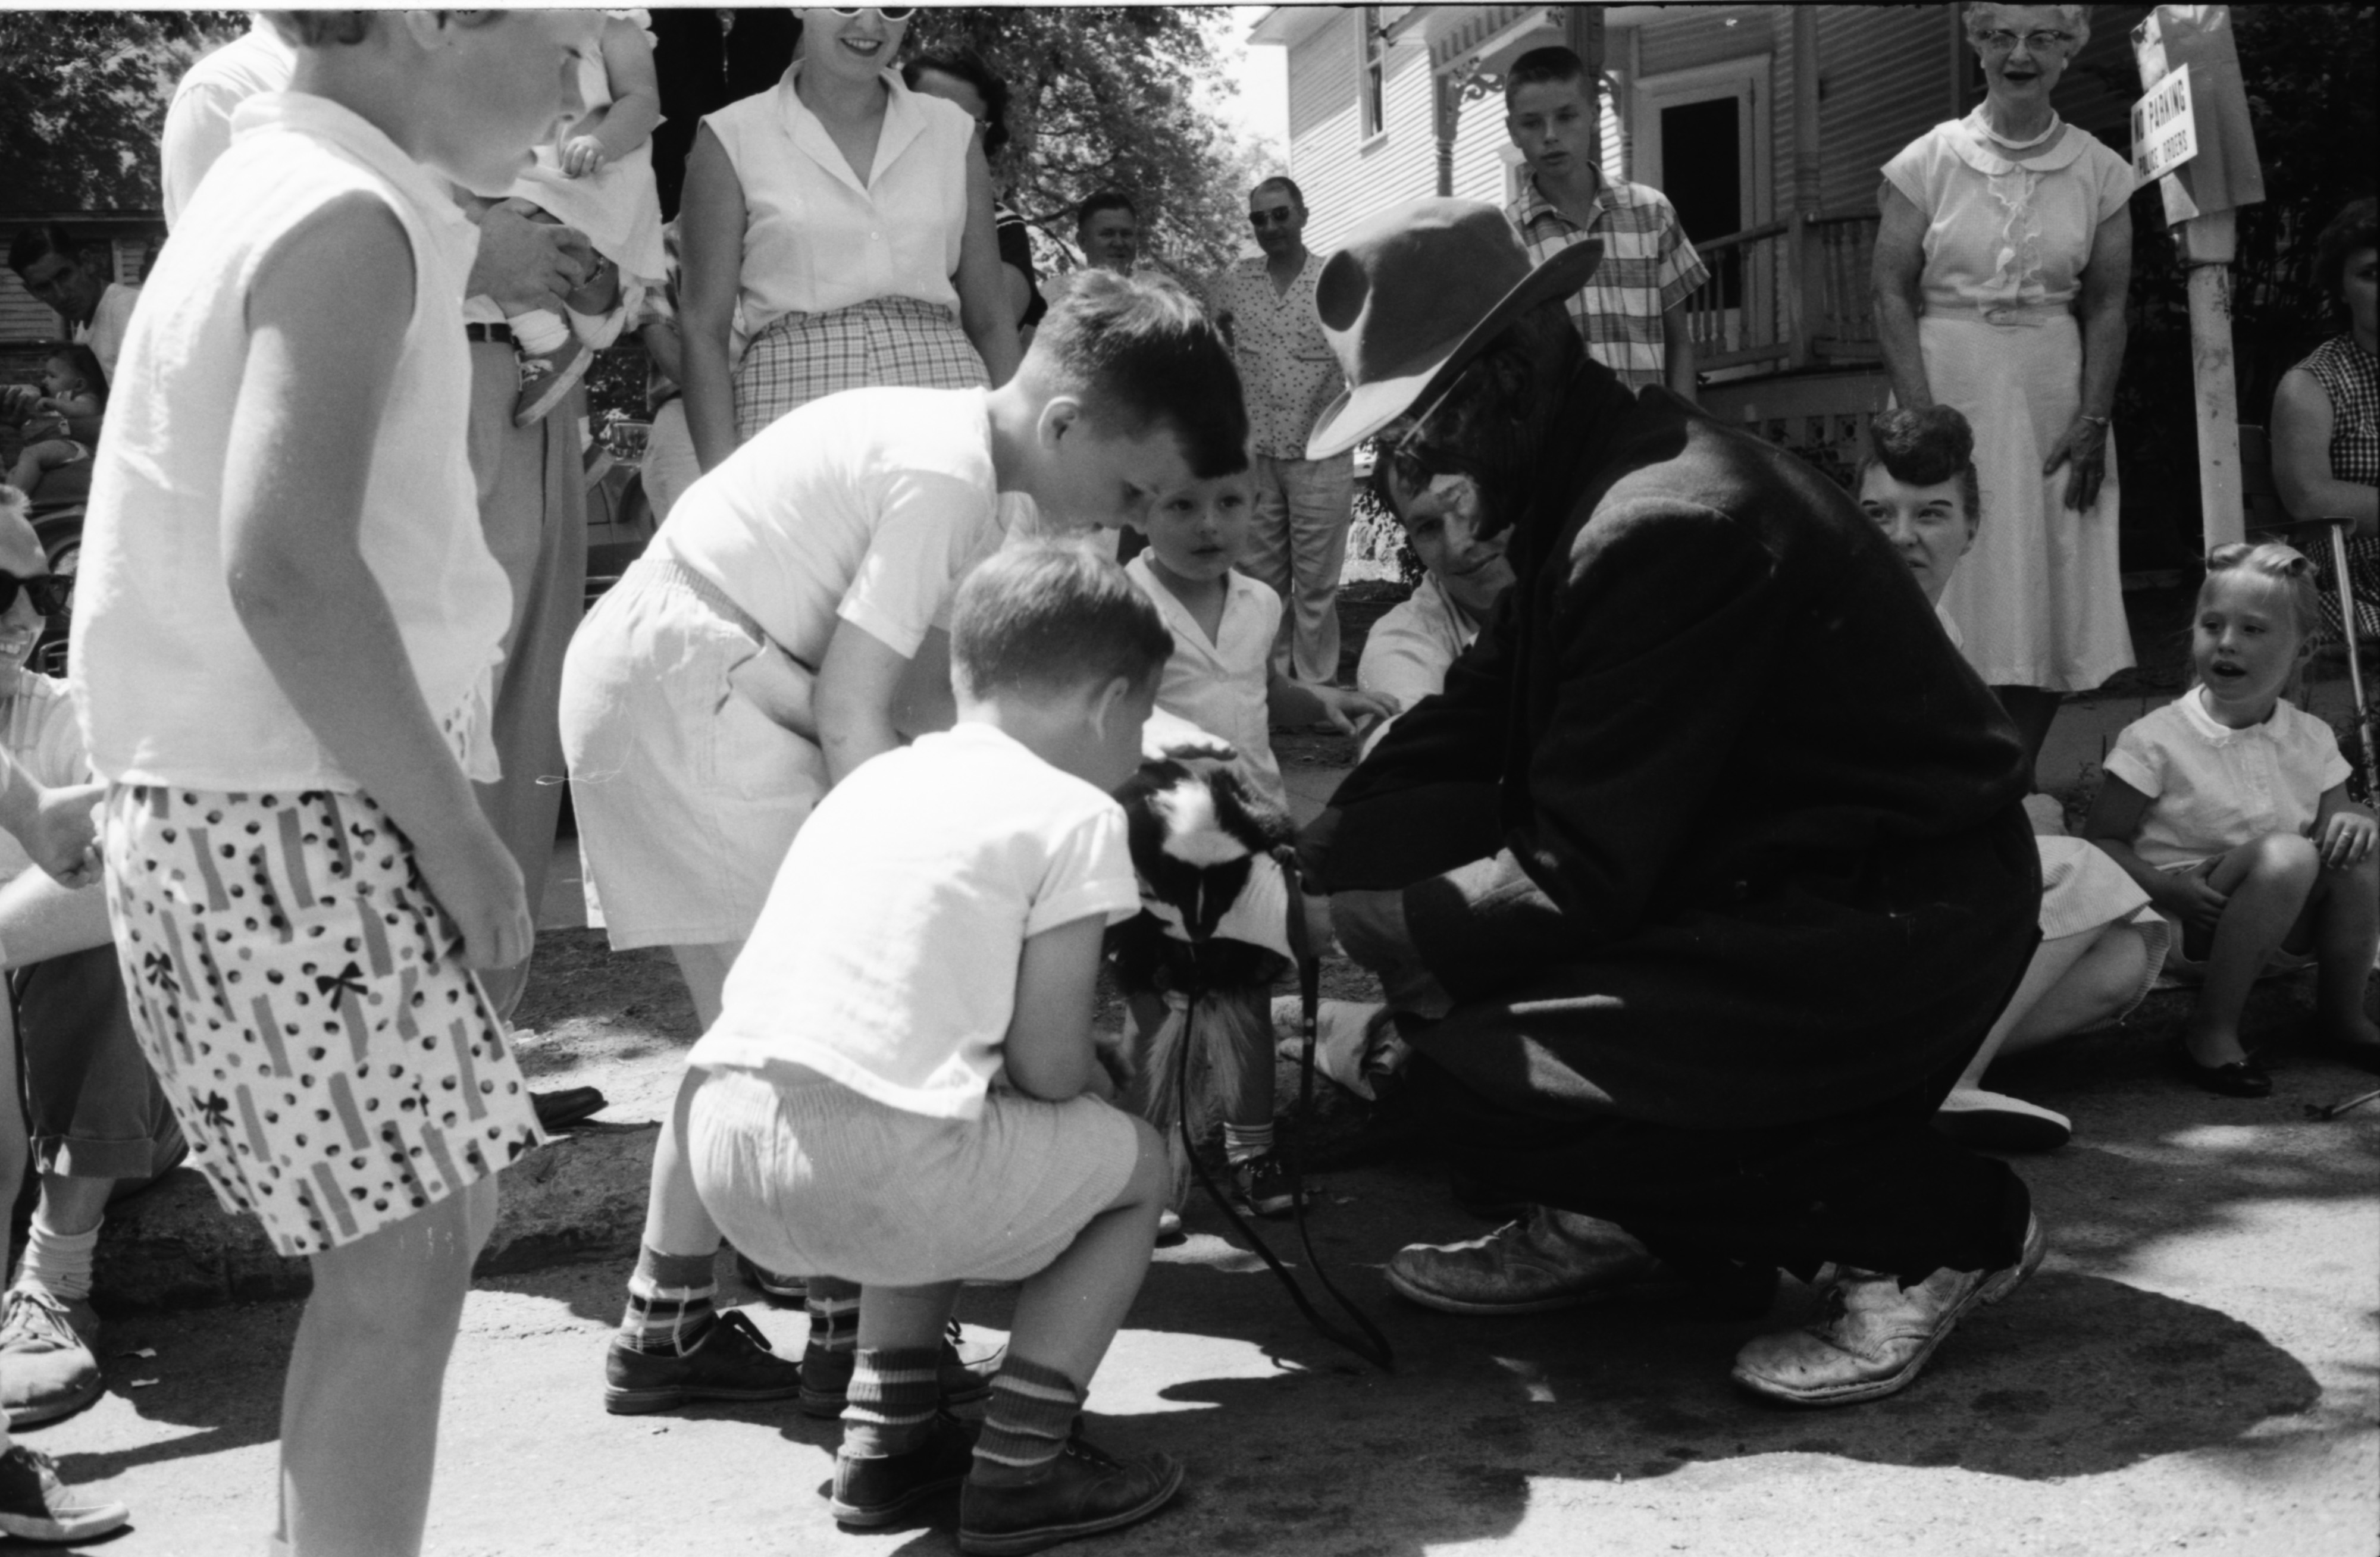 Costumed Man With Skunk Surrounded By Kids At The Ypsilanti Fourth Of July Parade, July 1959 image